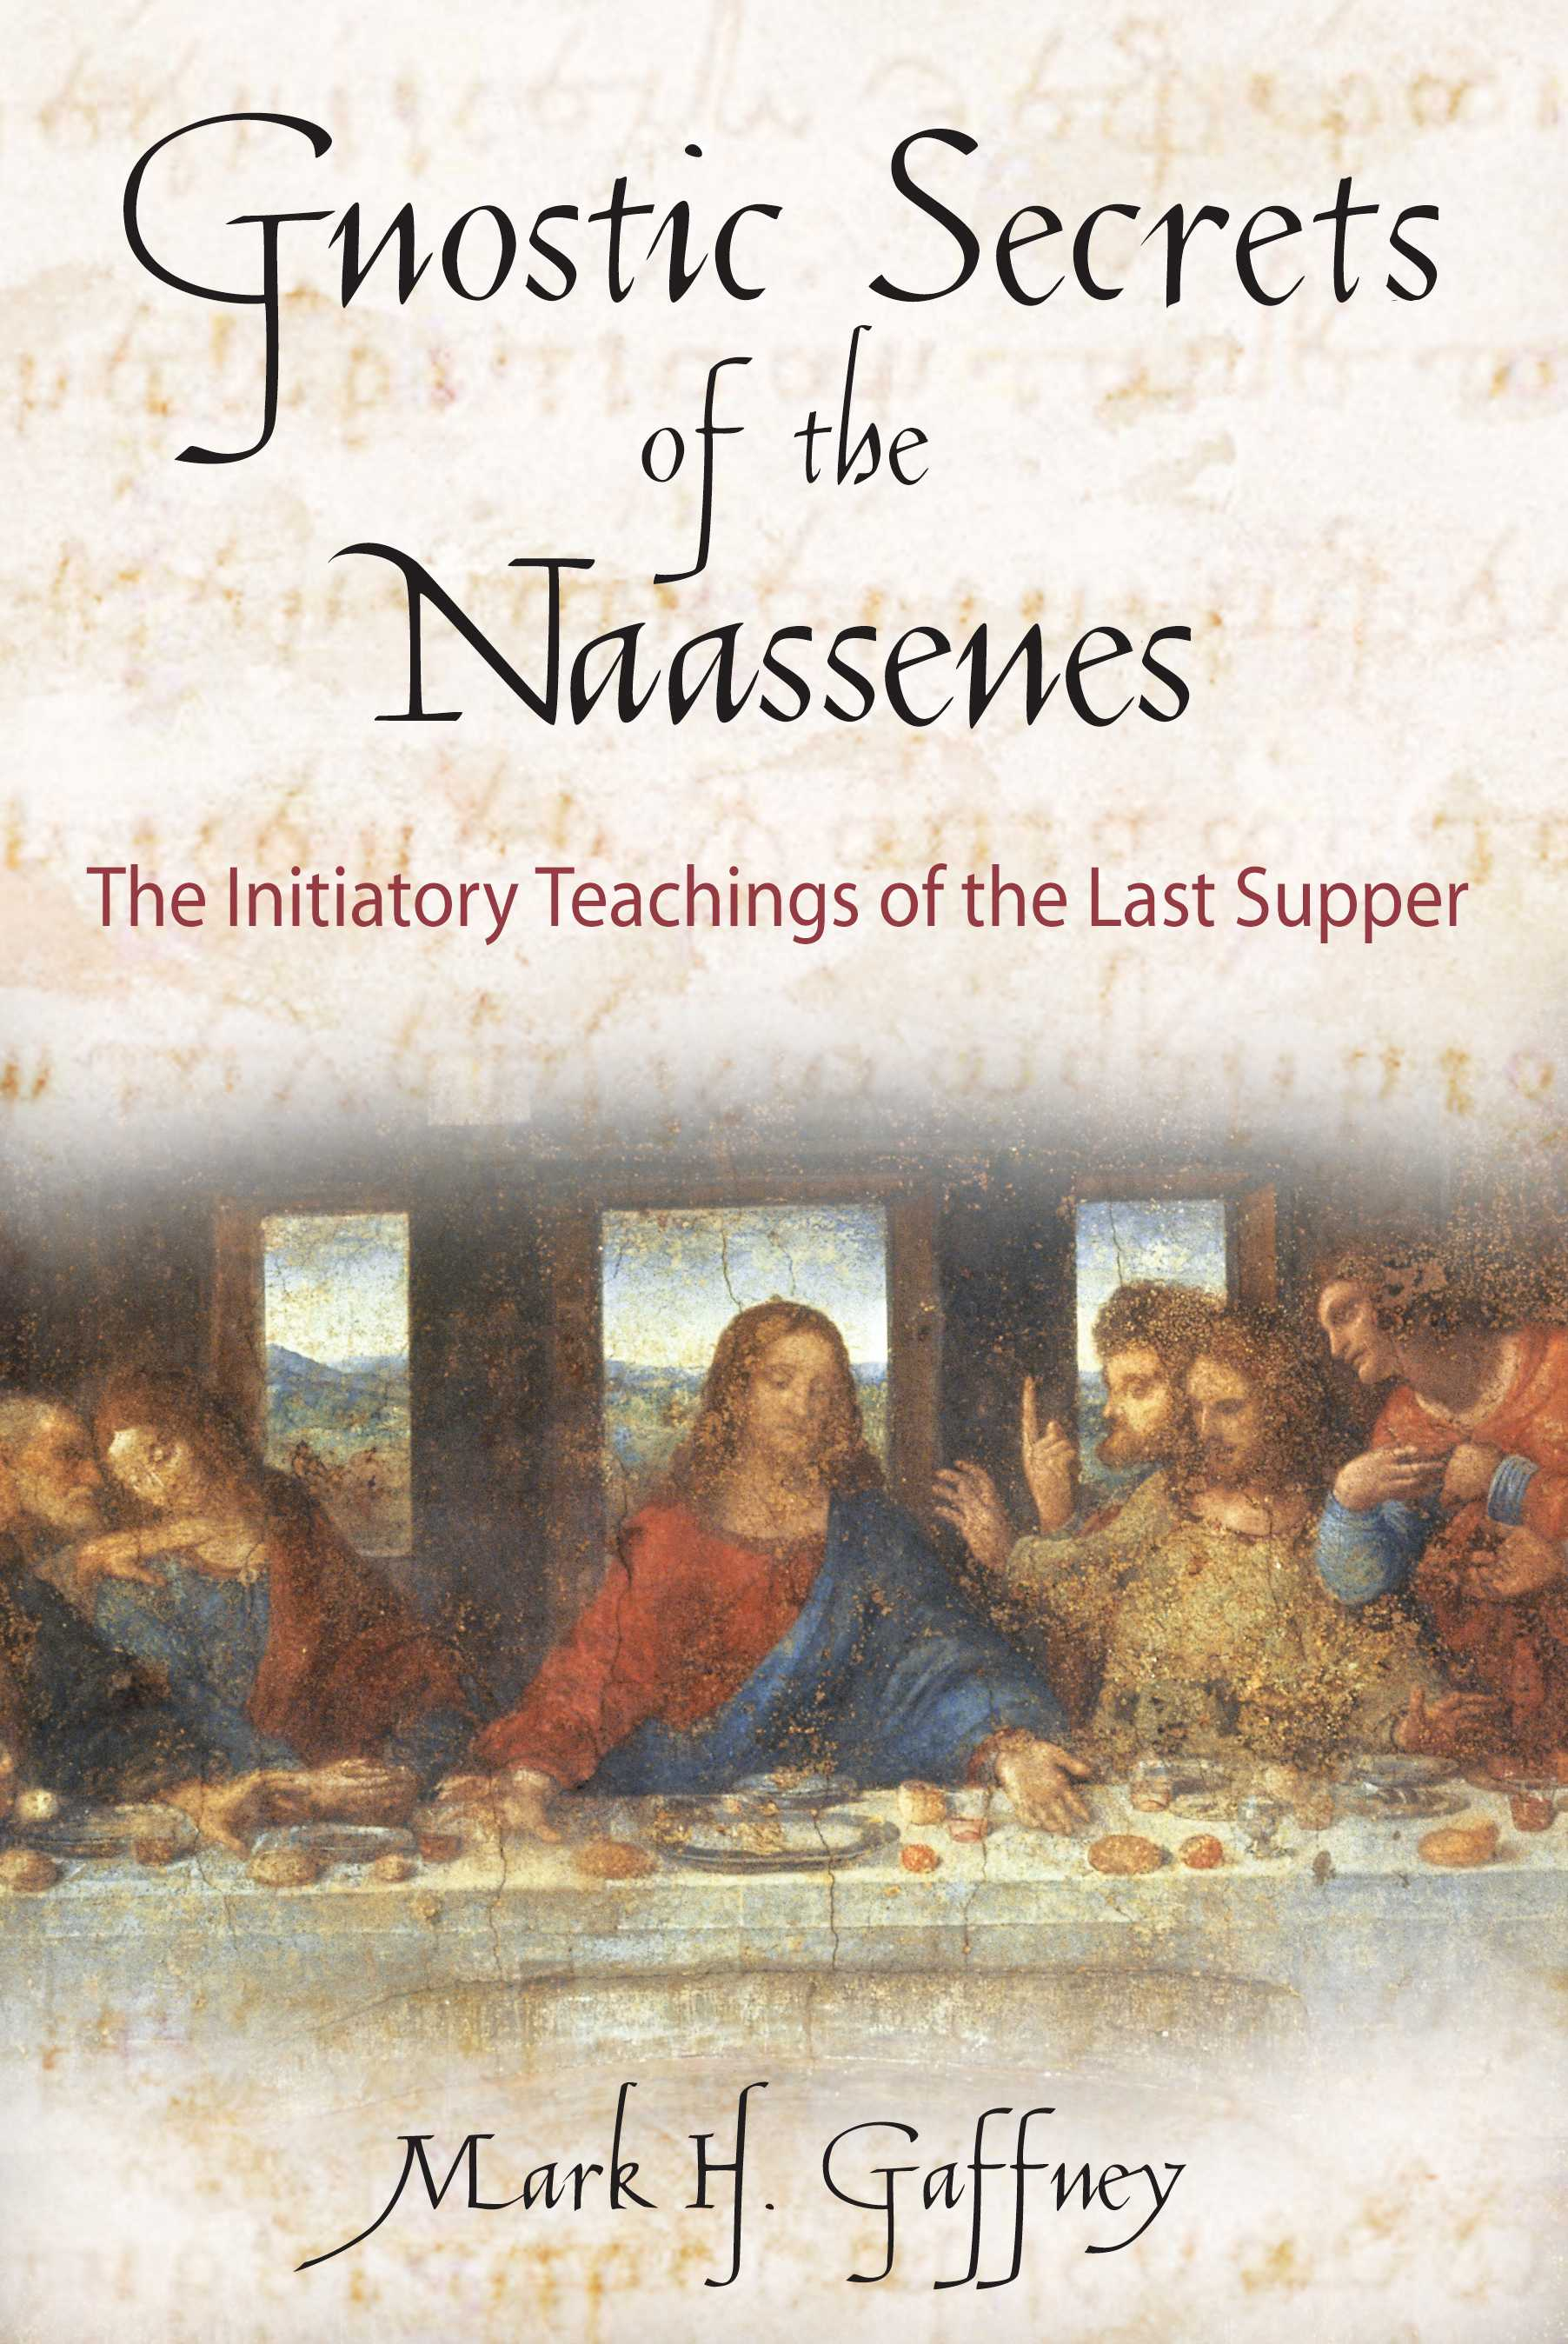 Gnostic secrets of the naassenes 9780892816972 hr